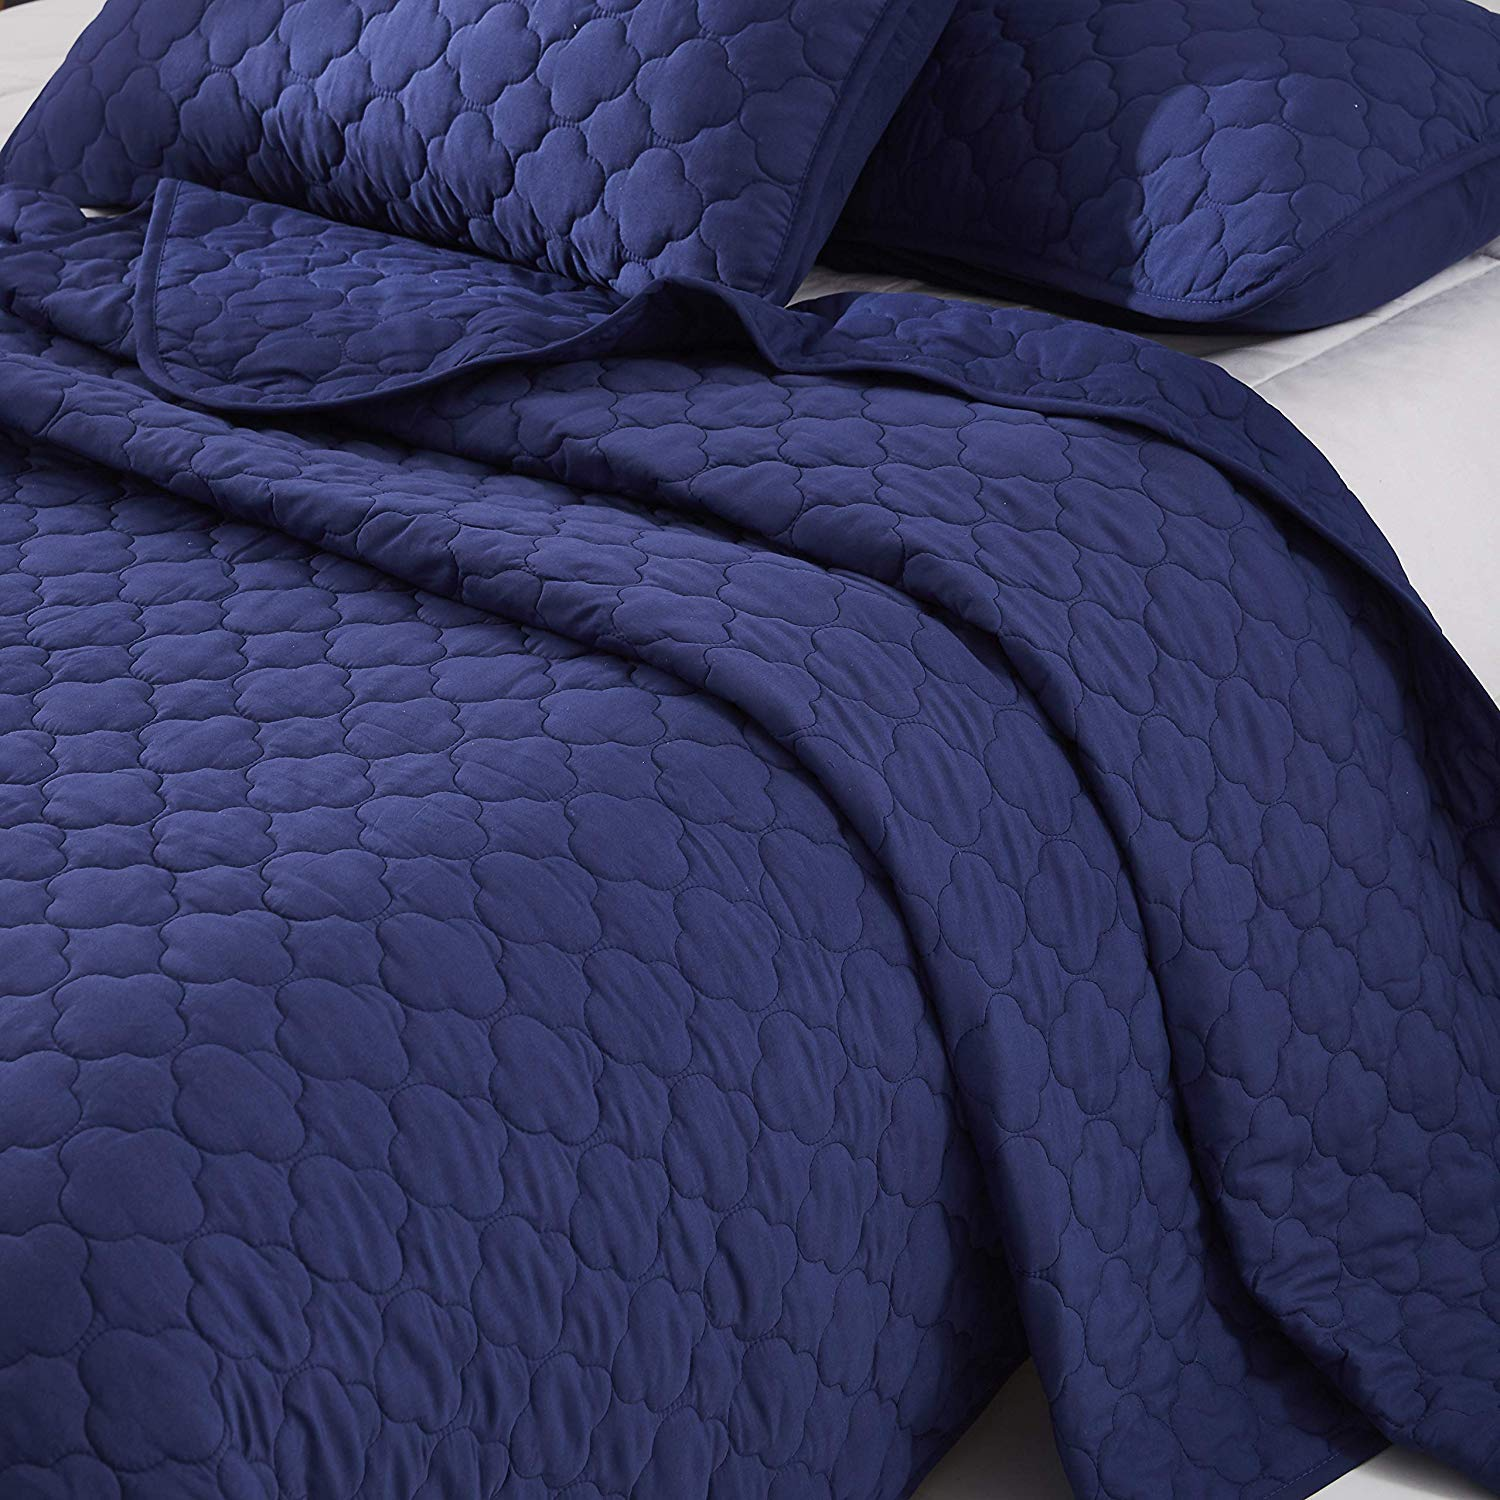 """OVERSIZE QUEEN BLUE SOLID COLOR QUILTED BEDSPREAD COVERLET (106""""X100"""") + 2 STANDARD SHAMS (20""""X26"""") HYPOALLERGENIC OVERFILLED BLANKET, 20'' FALL EACH SIDE -HOME, HOTEL/MOTEL, AIRBNB, RENTALS- 6.28 LBS"""